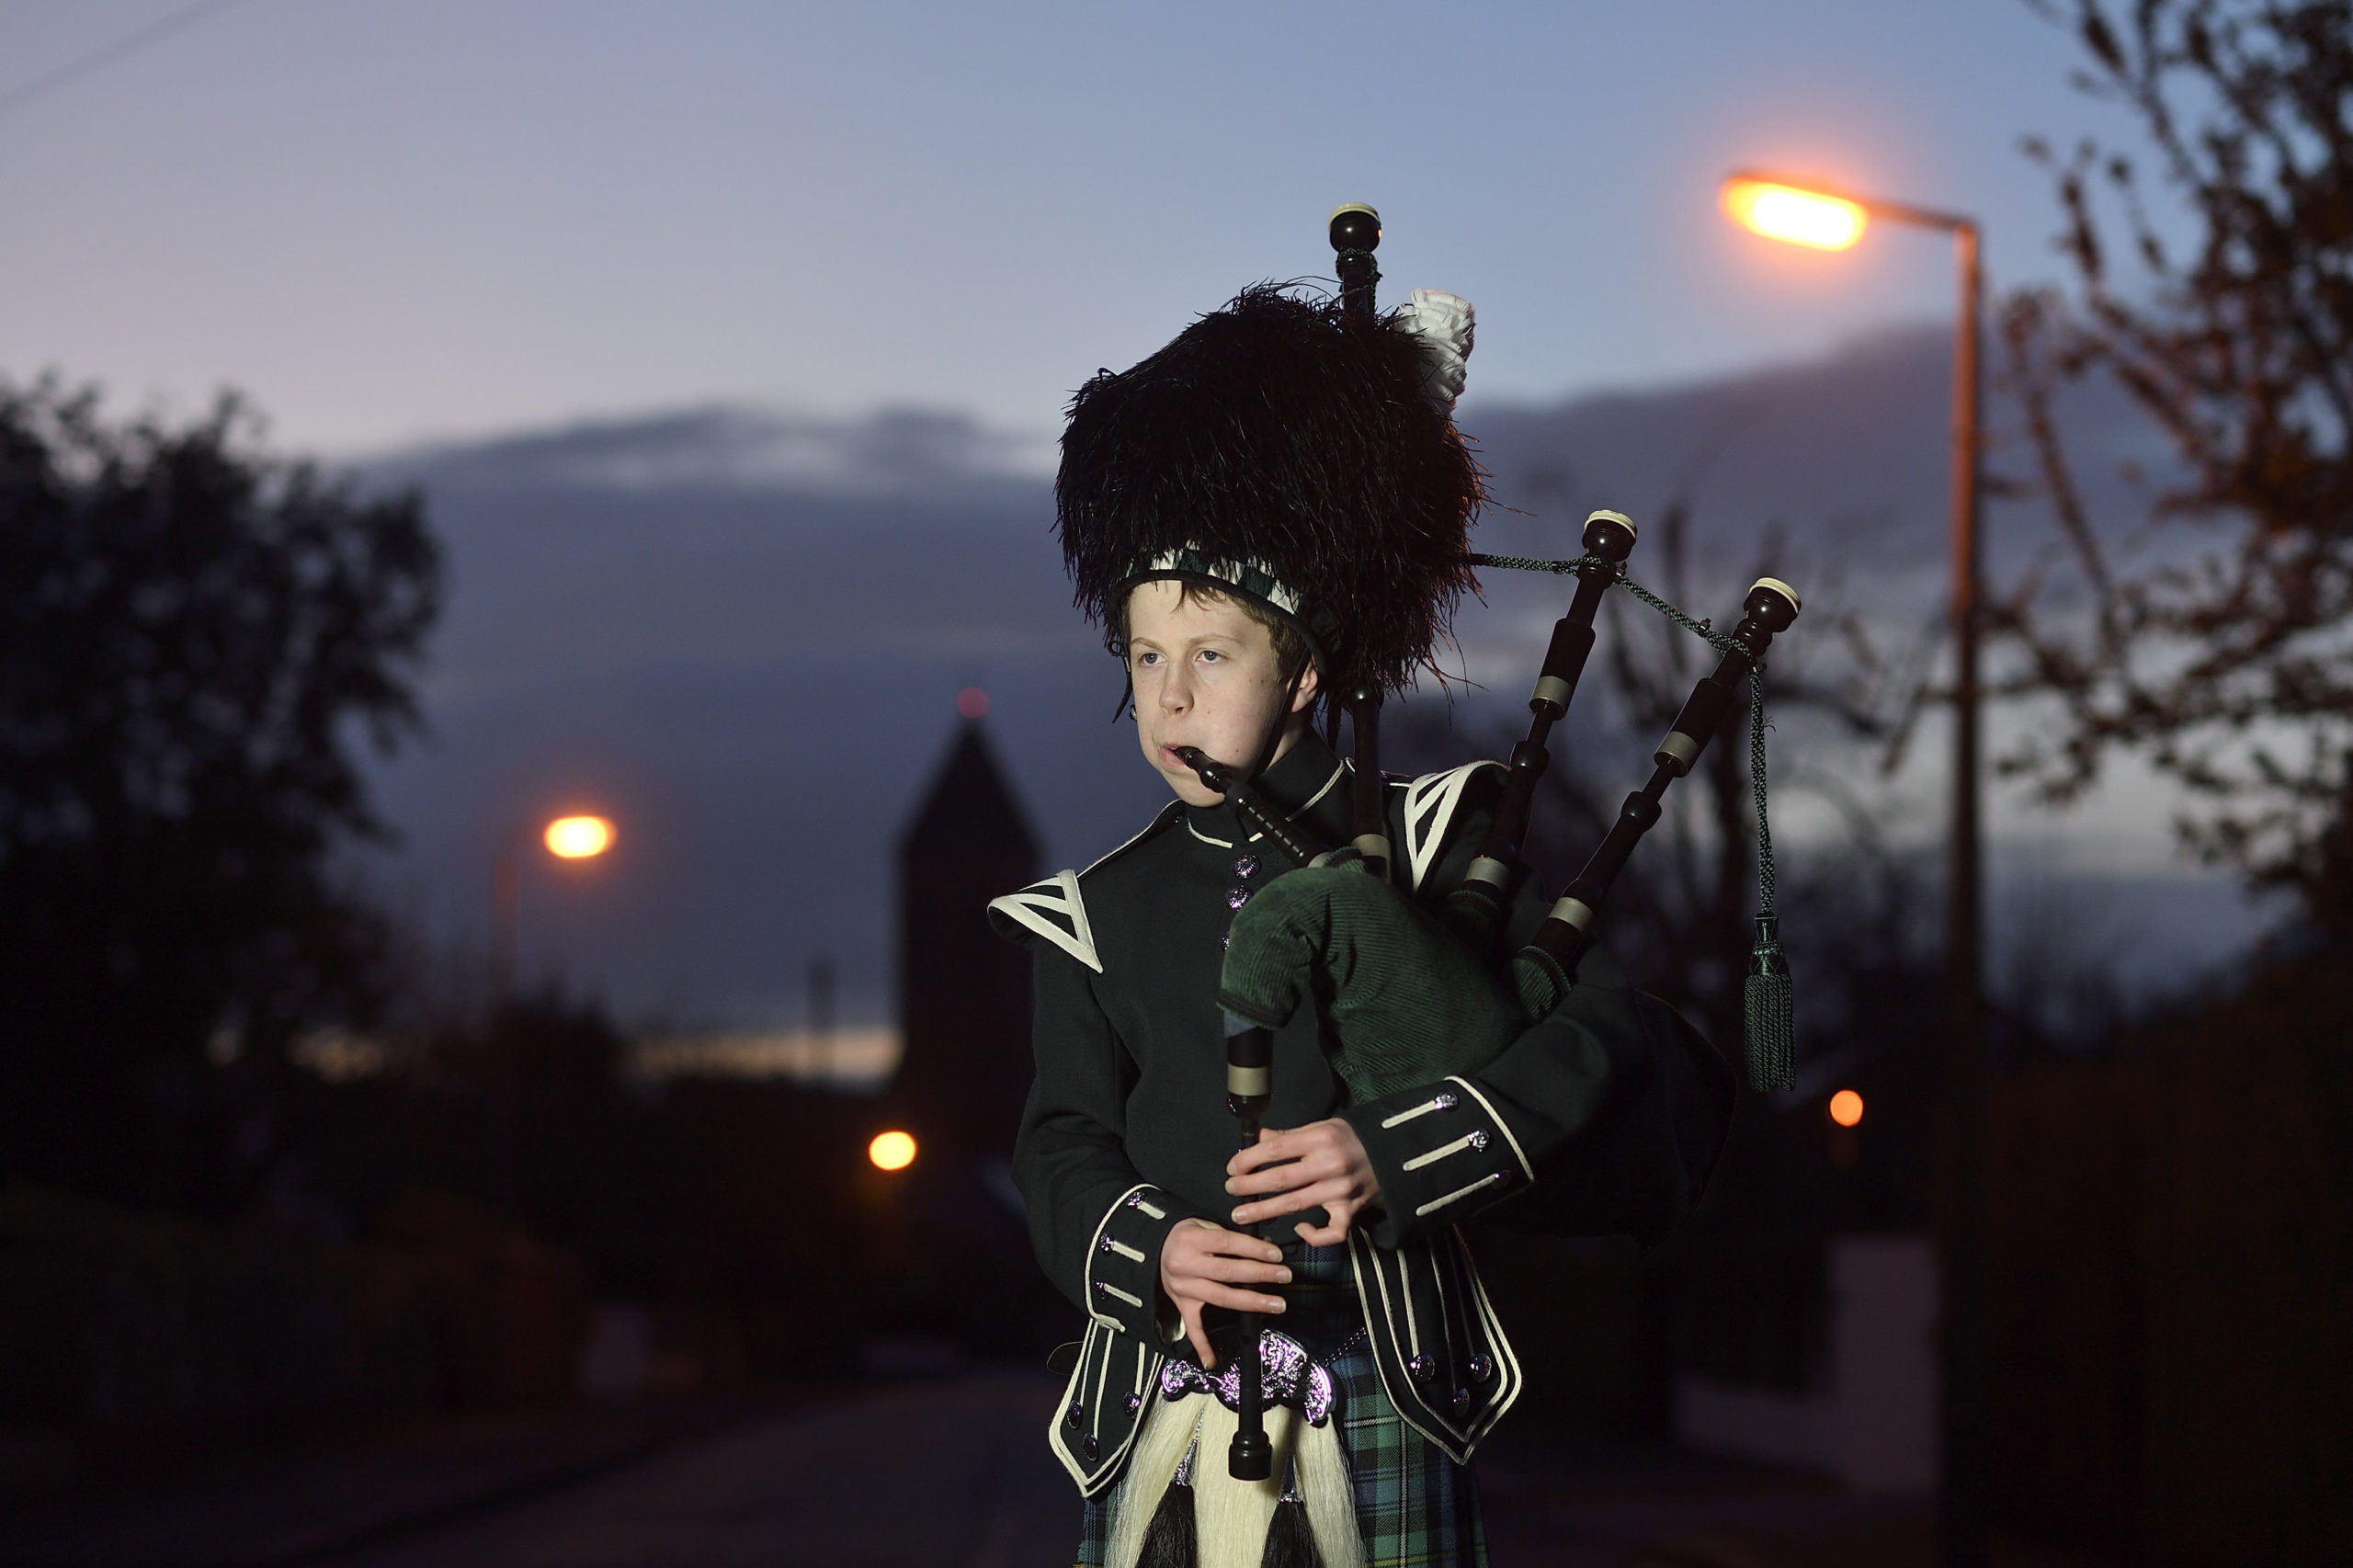 George Orchin (12), a piper in the Campbell College Pipe Band, plays Scotland the Brave outside his neighbour's house in East Belfast, Northern Ireland, during a second Thursday night of 'Clap for our Carers' as people across the country showed their appreciation for all NHS workers who are helping to fight the coronavirus. PA Photo. Picture date: Thursday April 2, 2020. George's neighbour, who is a healthcare worker, contacted him by putting a note through his door requesting that he walks down the street and pipes in support of healthcare workers in the street. Photo credit should read: Michael Cooper/PA Wire